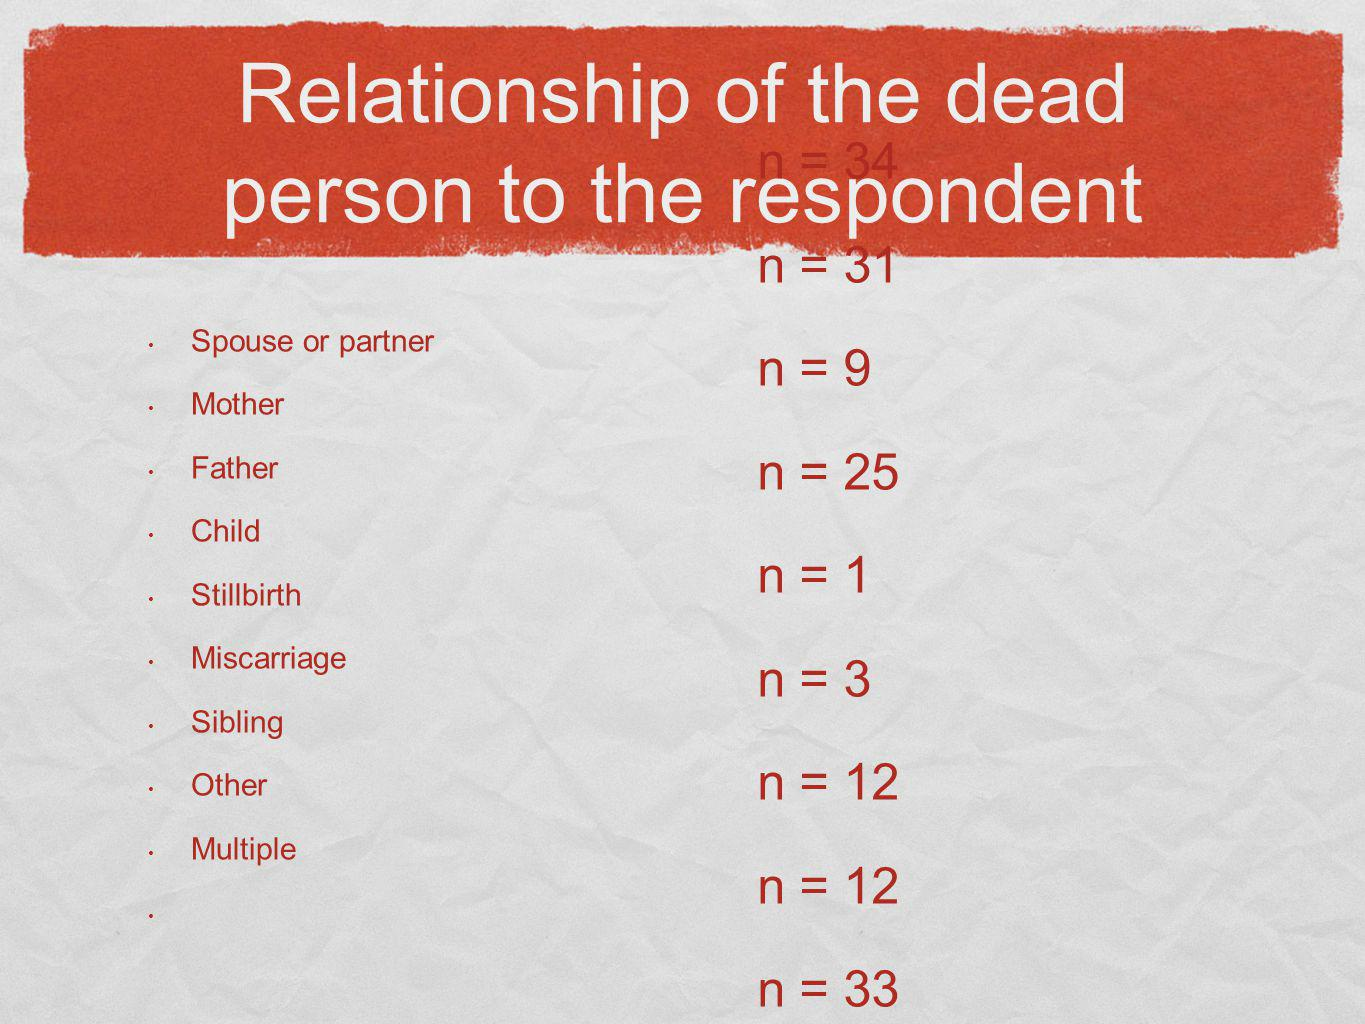 Relationship of the dead person to the respondent